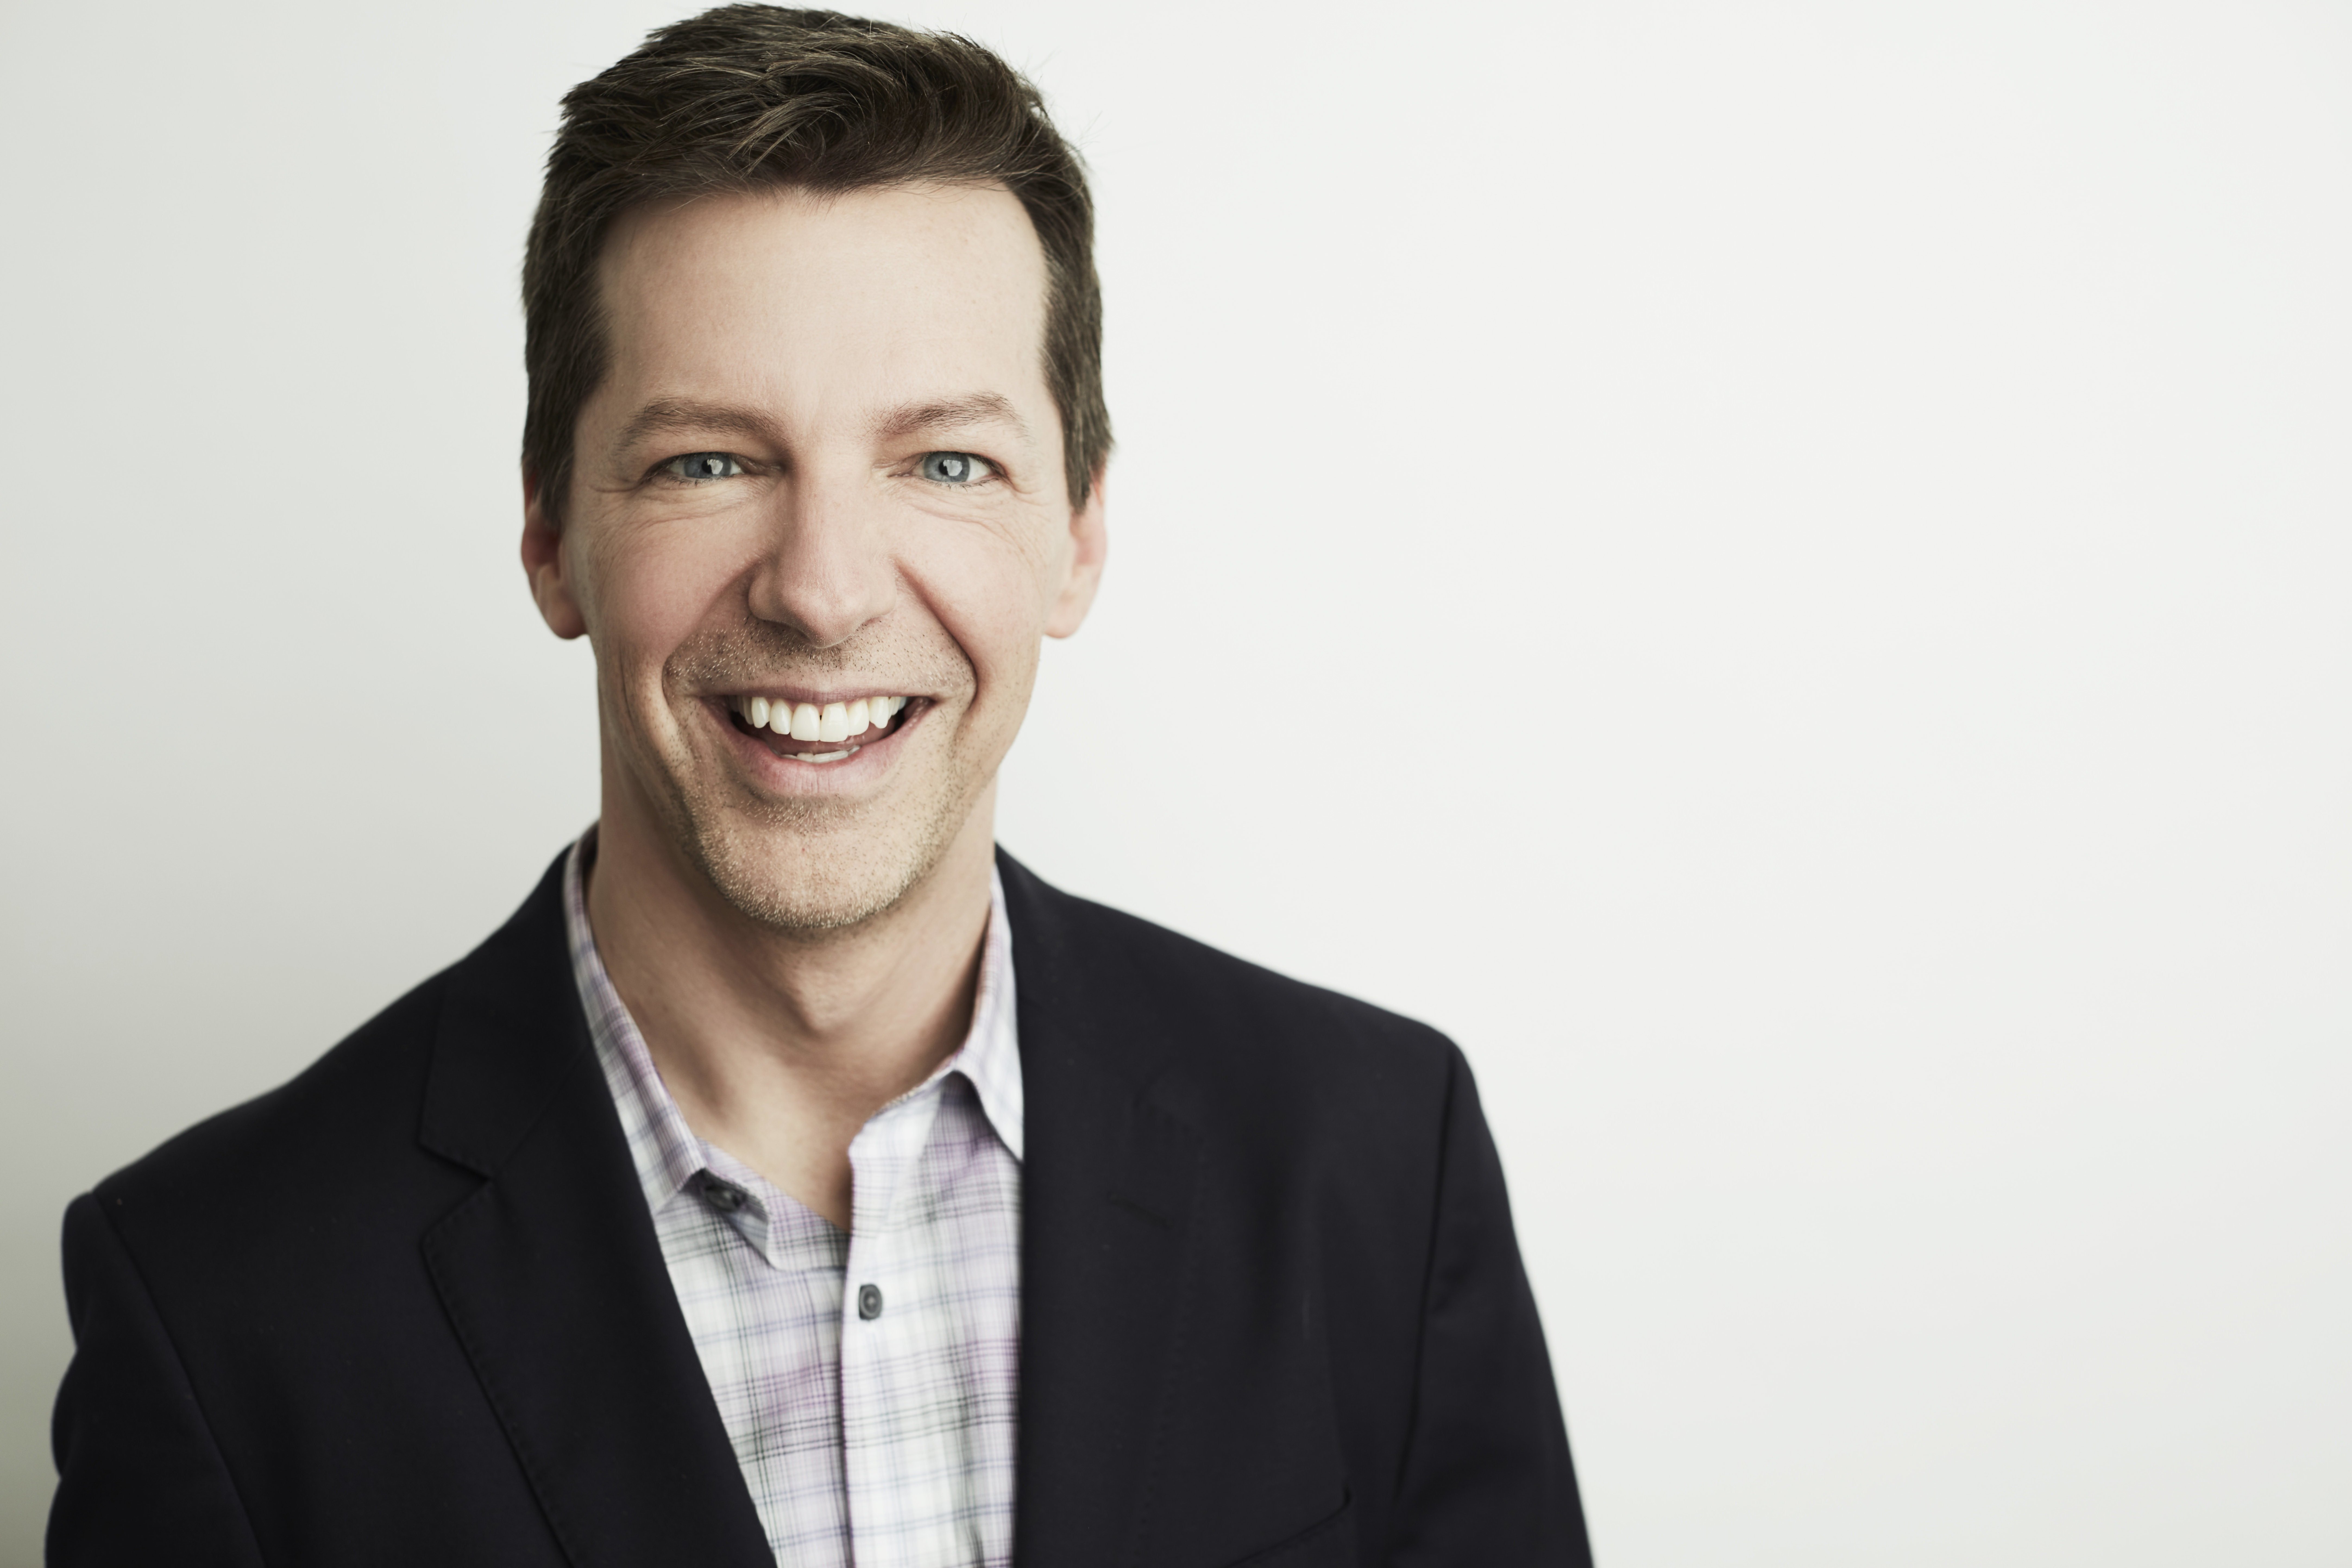 'Will And Grace' Actor Sean Hayes Dismisses Argument Jack McFarland Plays Up To Stereotypes (EXCLUSIVE)